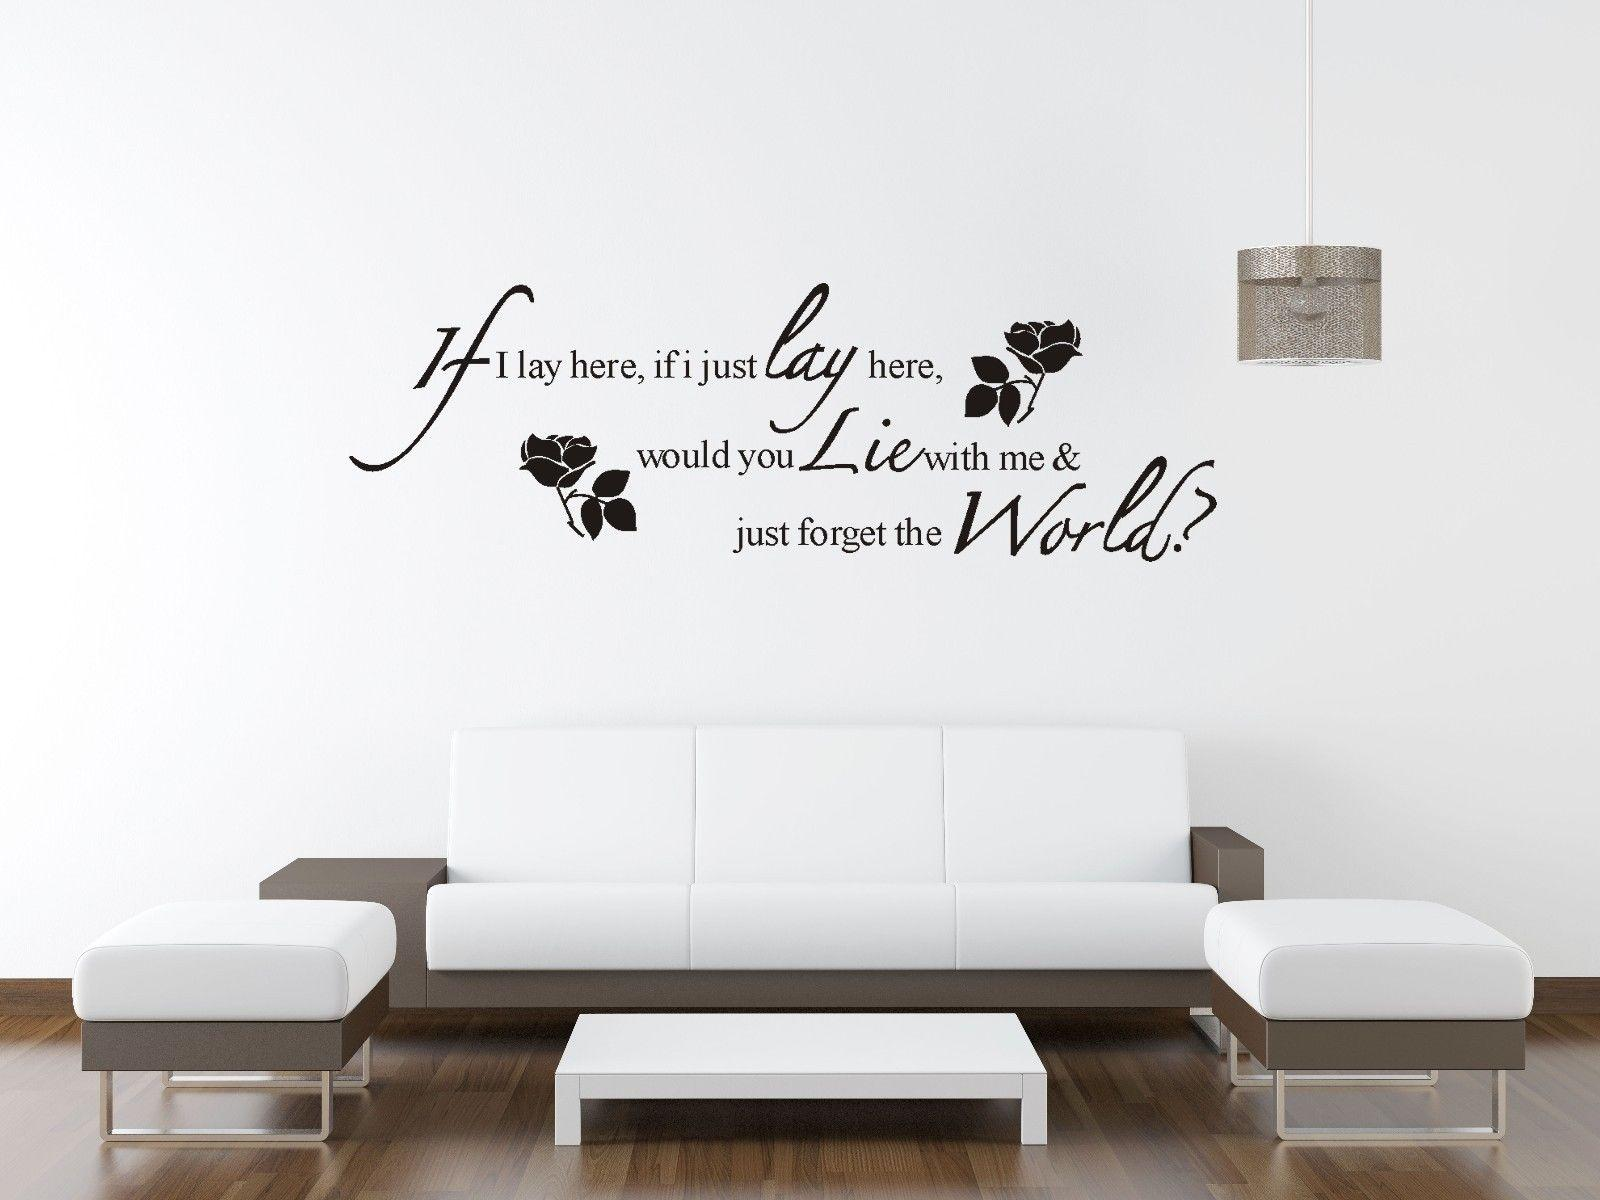 Removable Wall Art Decals Quotes : Removable wall vinyl quote words letter sticker art mural